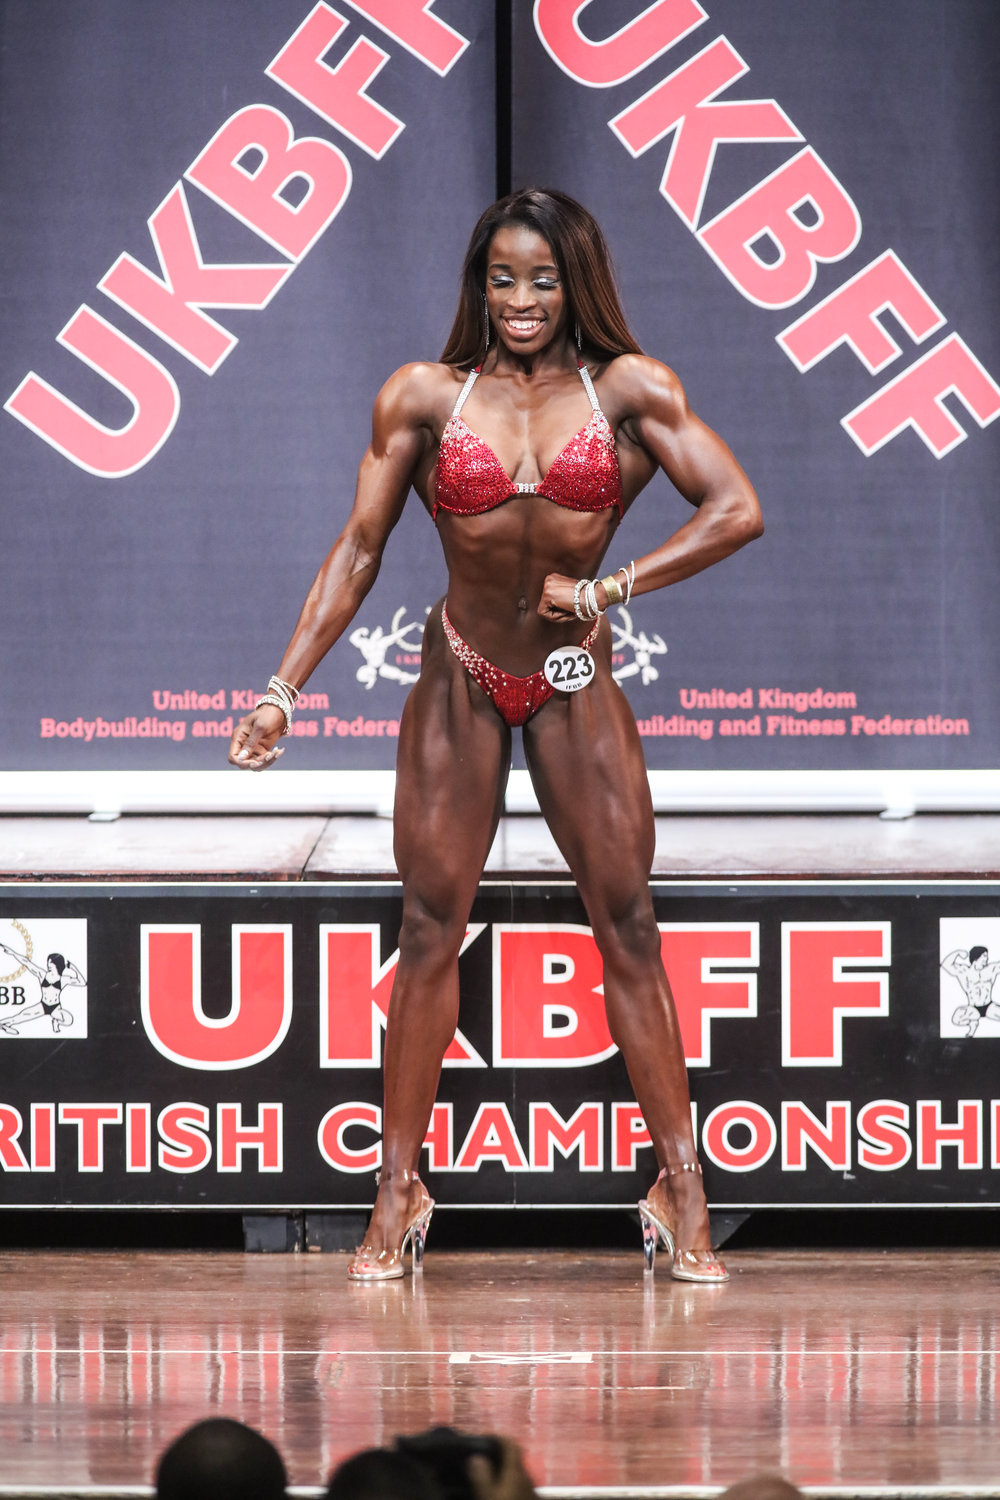 Rhea on stage at last year's British Championships. Photo by Christopher Bailey.